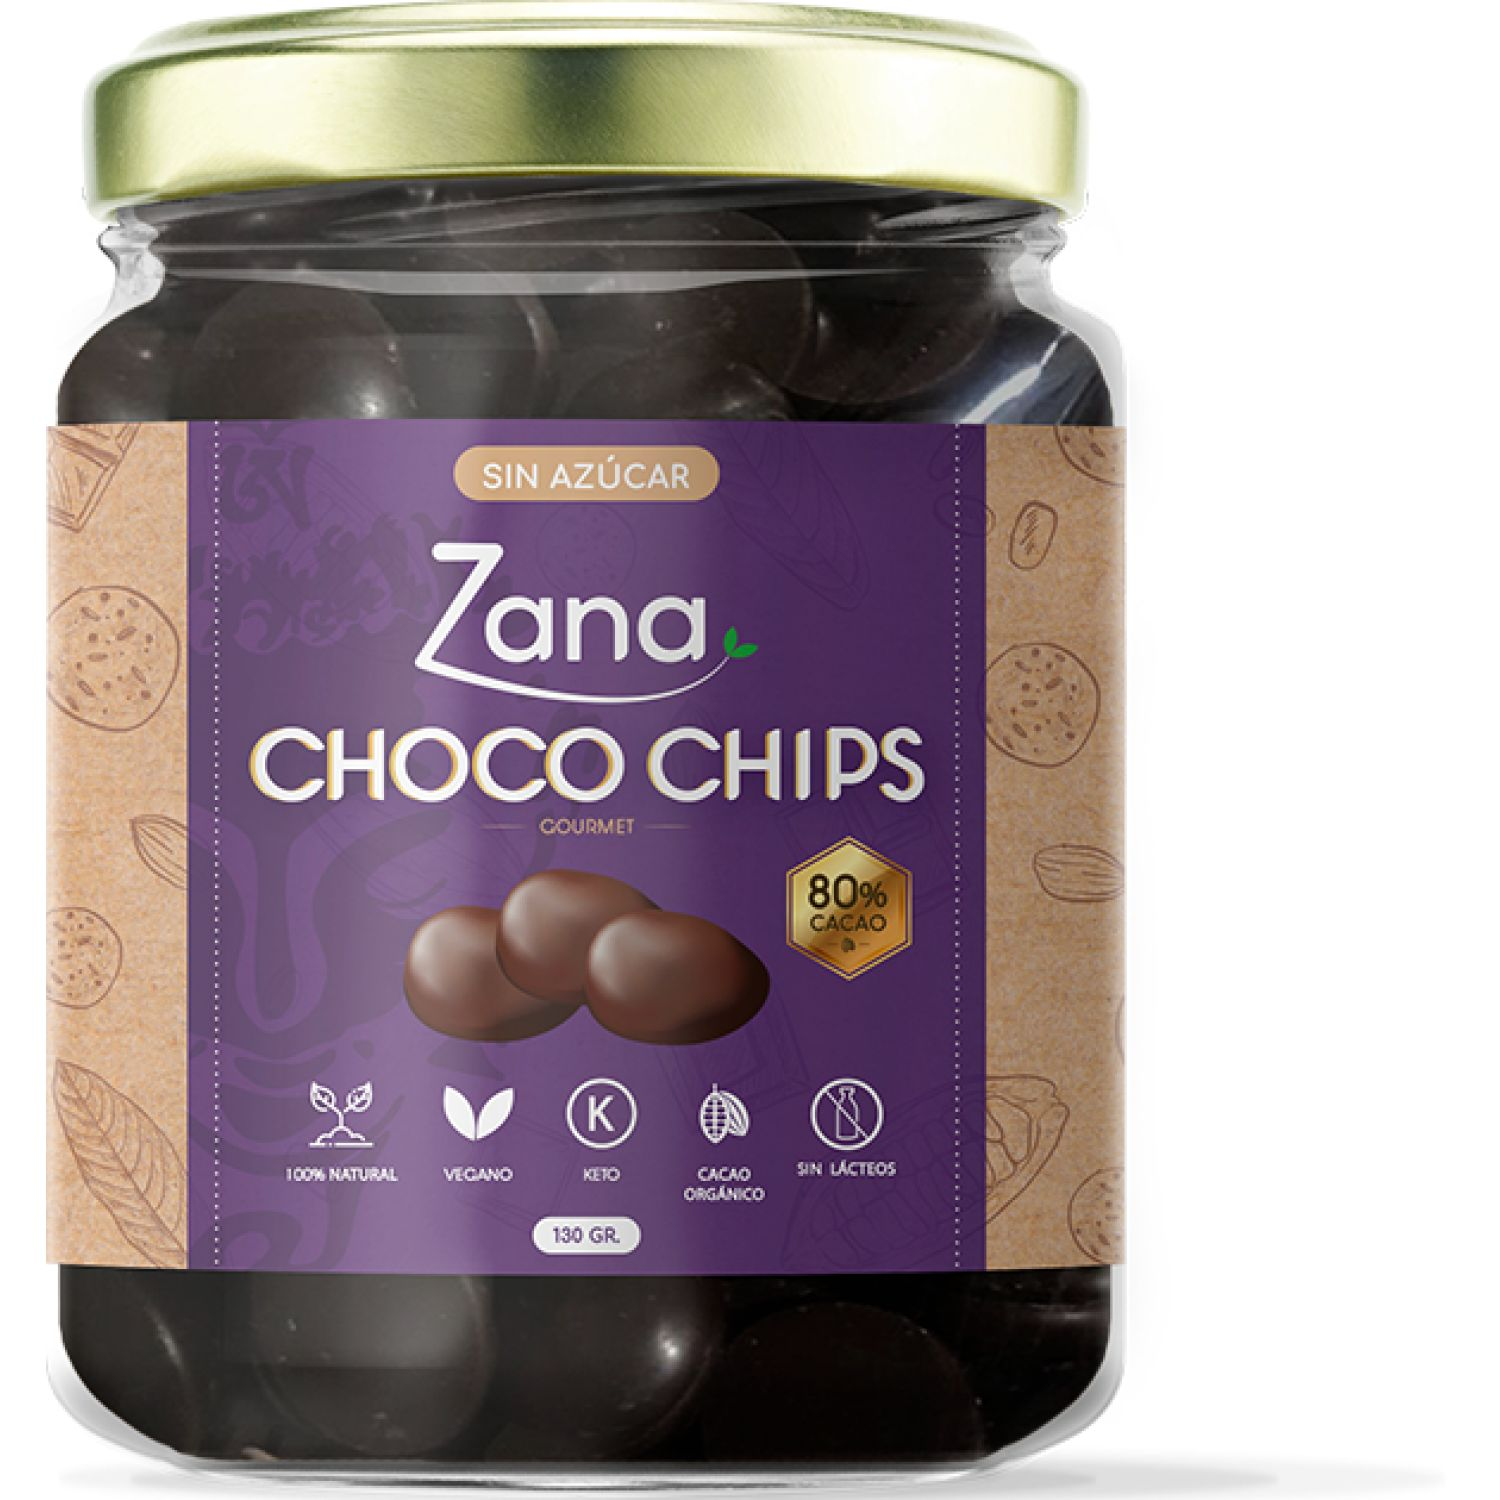 Zana Choco Chips 130g SIN COLOR Surtidos de dulces y chocolate